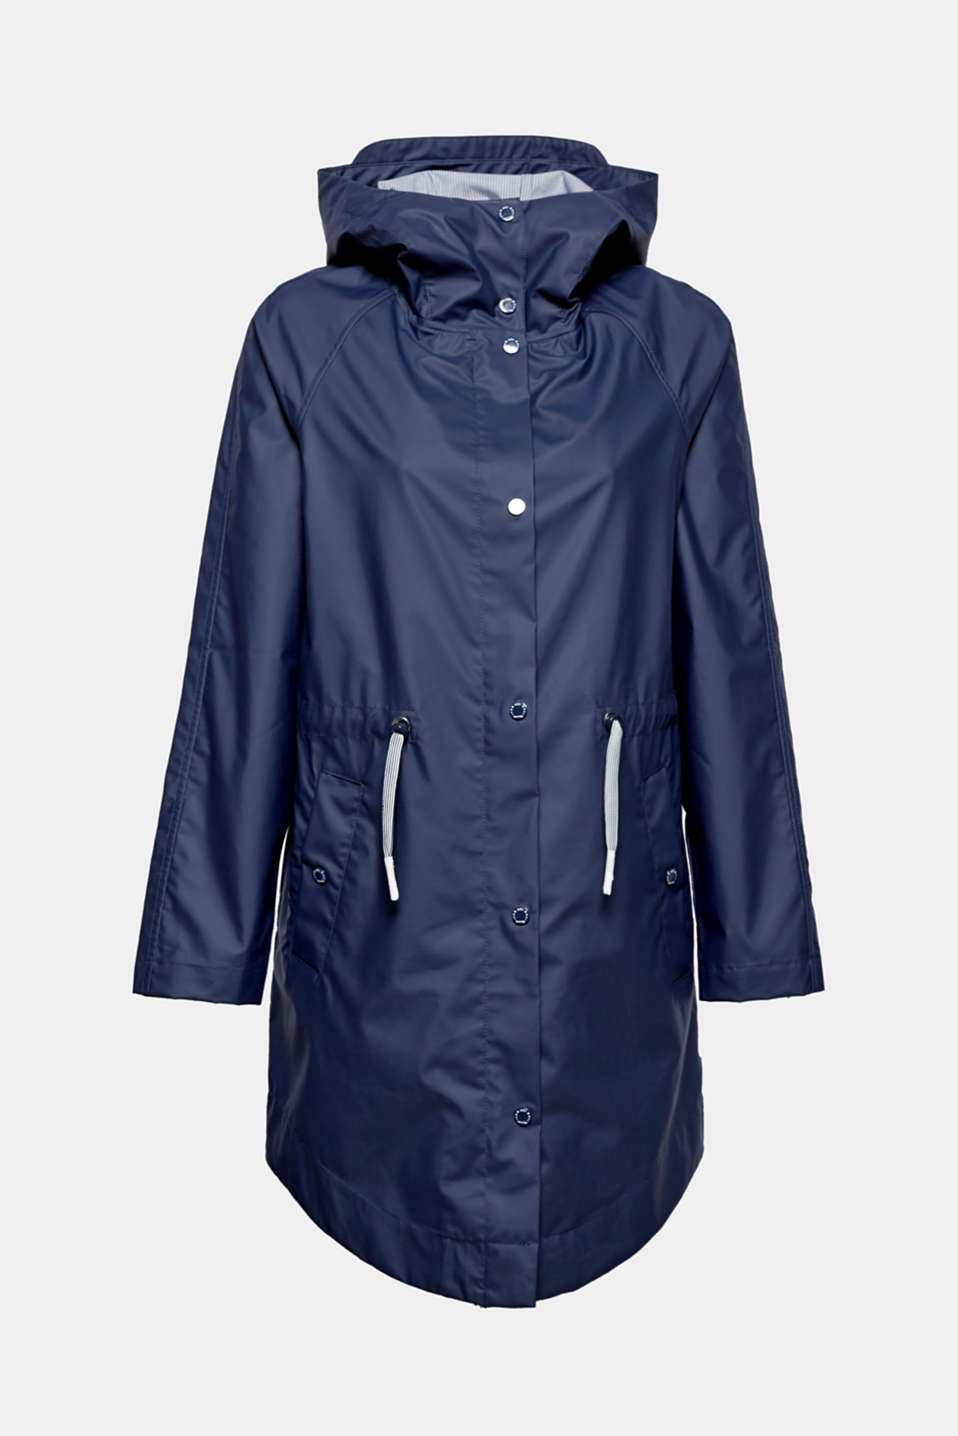 This rain parka made of water-resistant blended cotton with a hood and drawstring panel is functional and super casual!